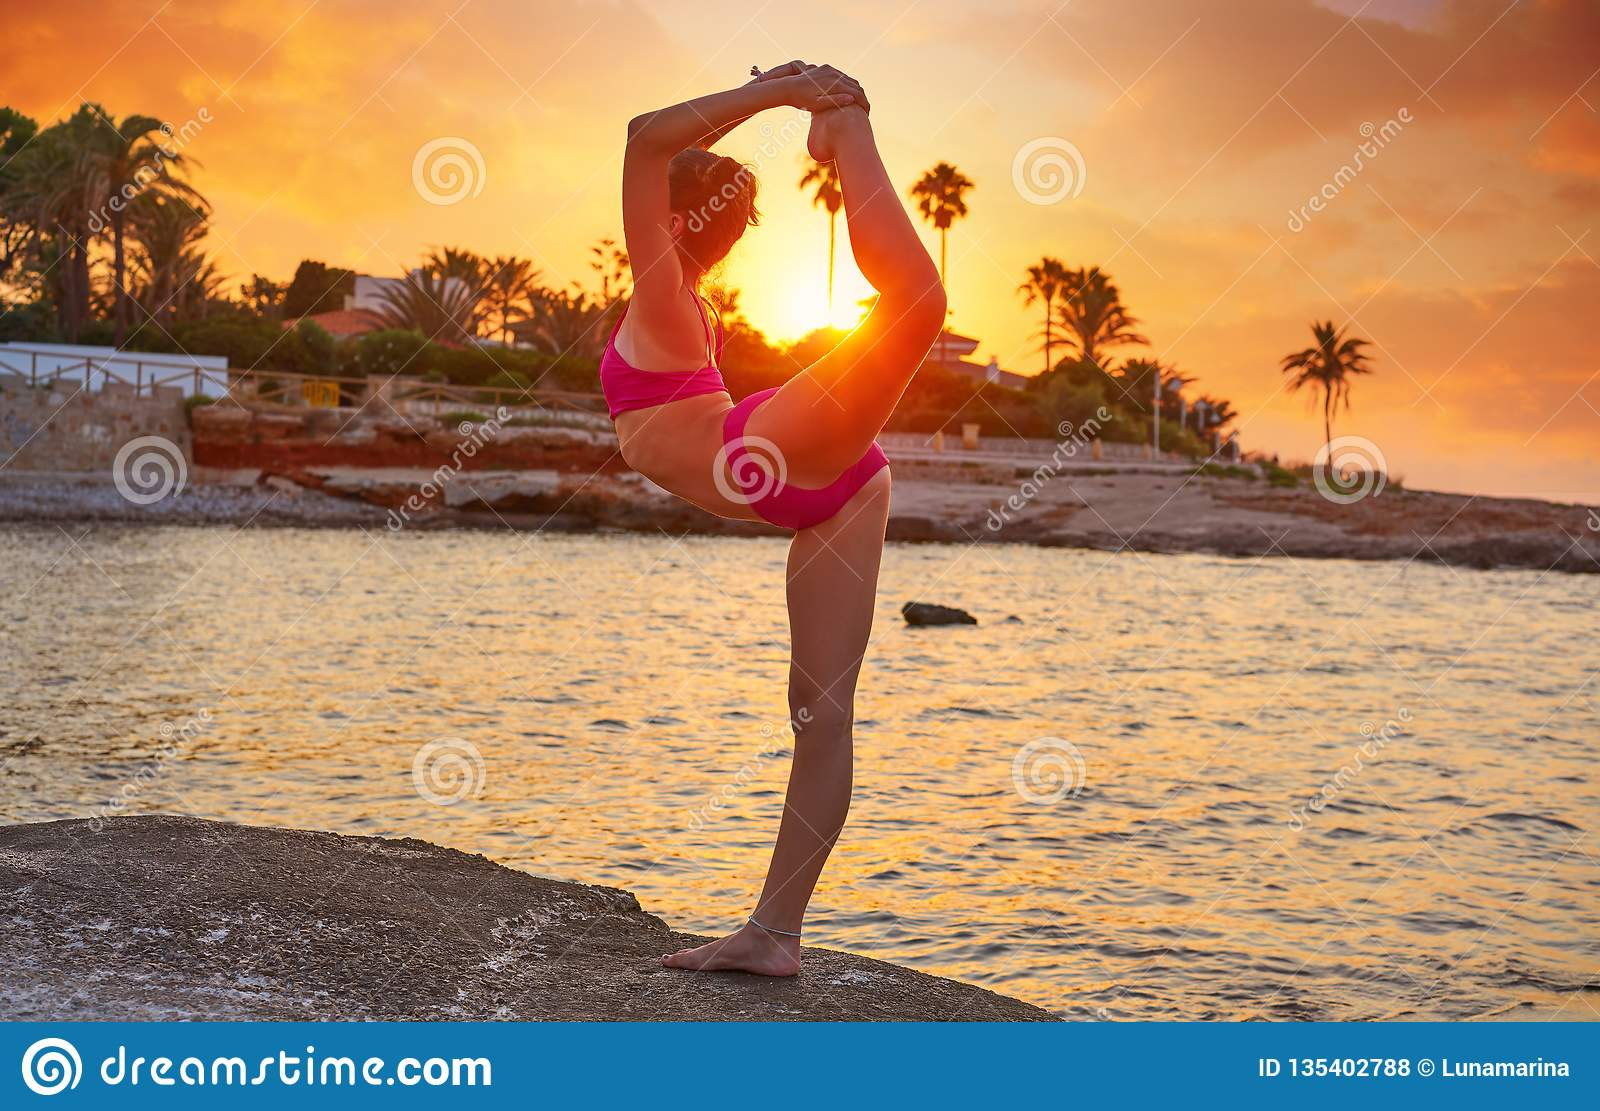 Girl silhouette at beach sunset gymnastics